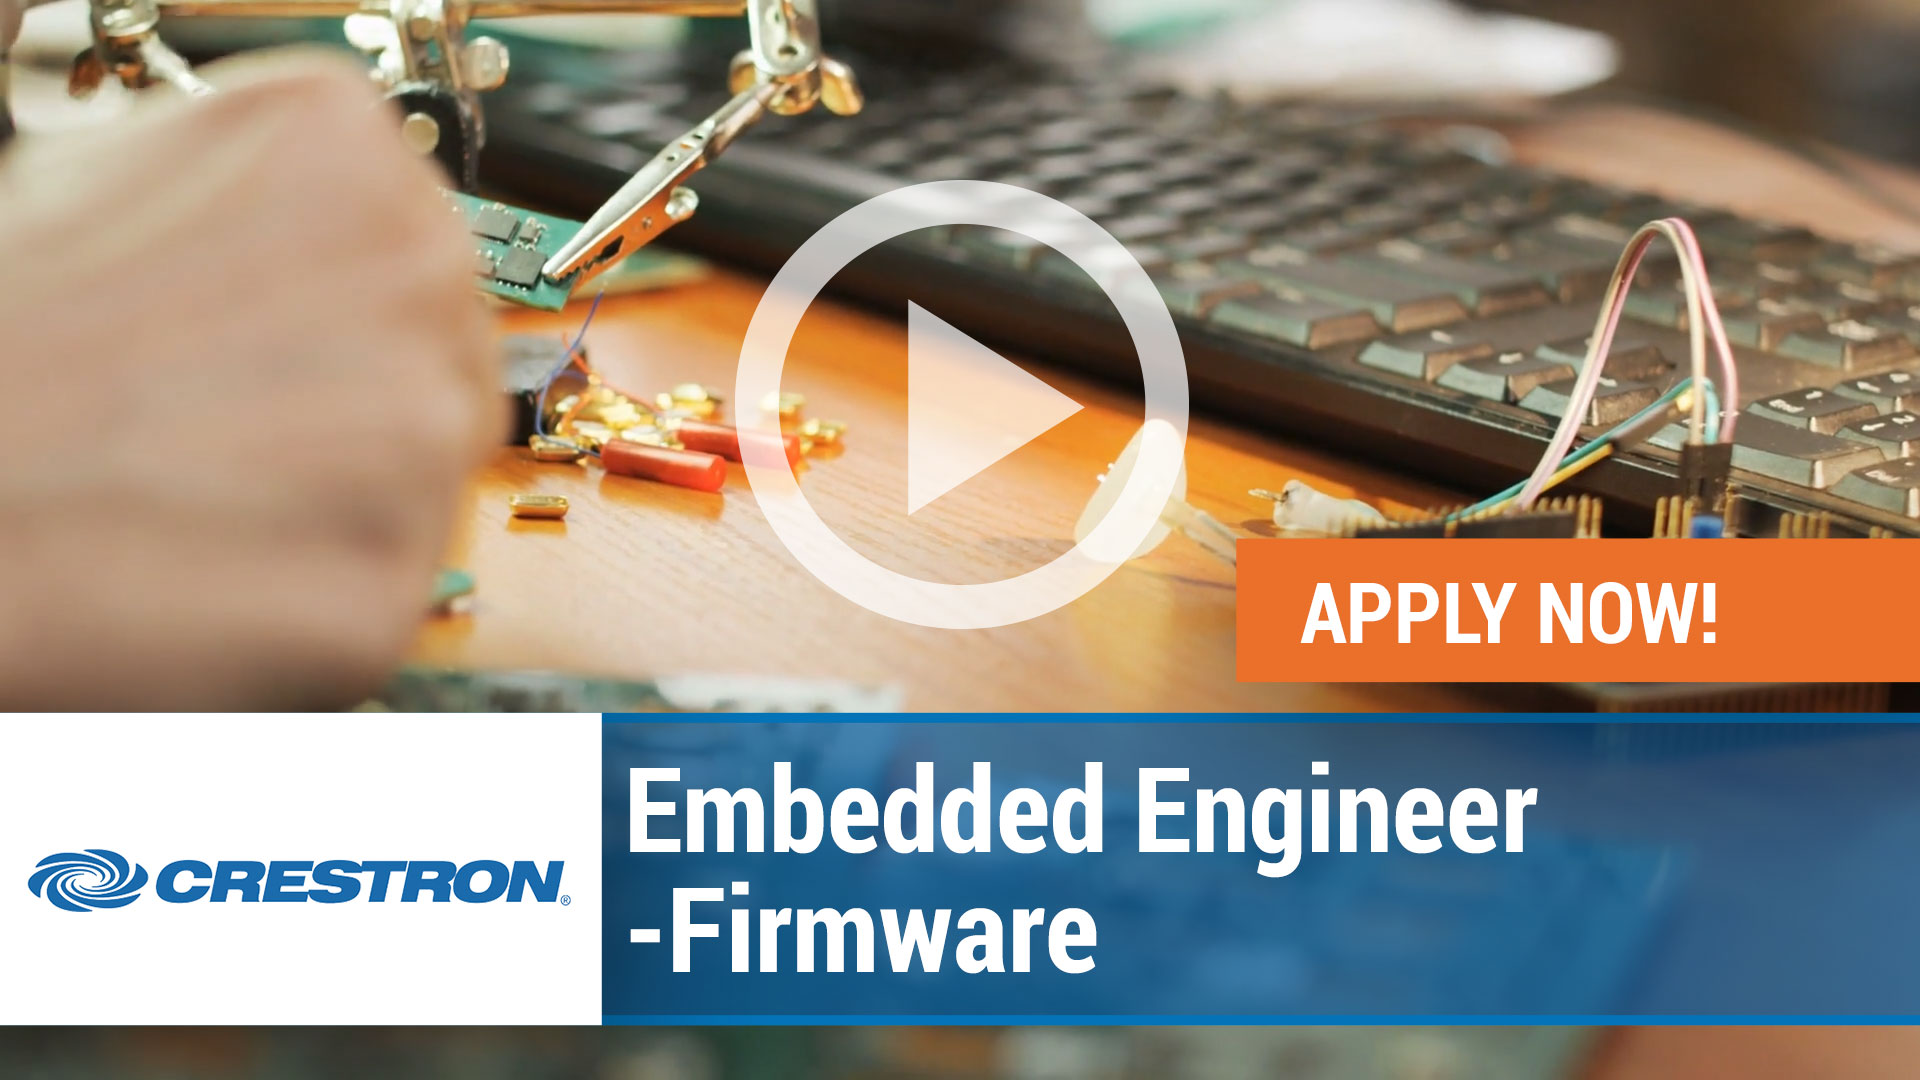 Watch our careers video for available job opening Embedded Engineer - Firmware in Rockleigh, New Jersey